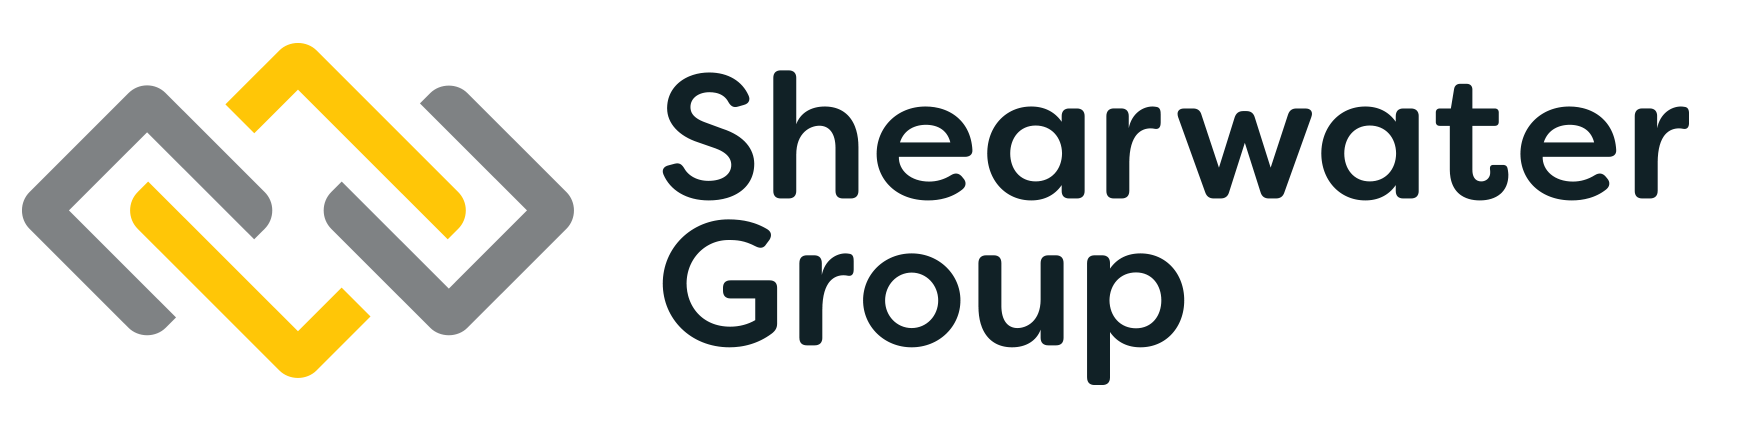 Shearwater Group